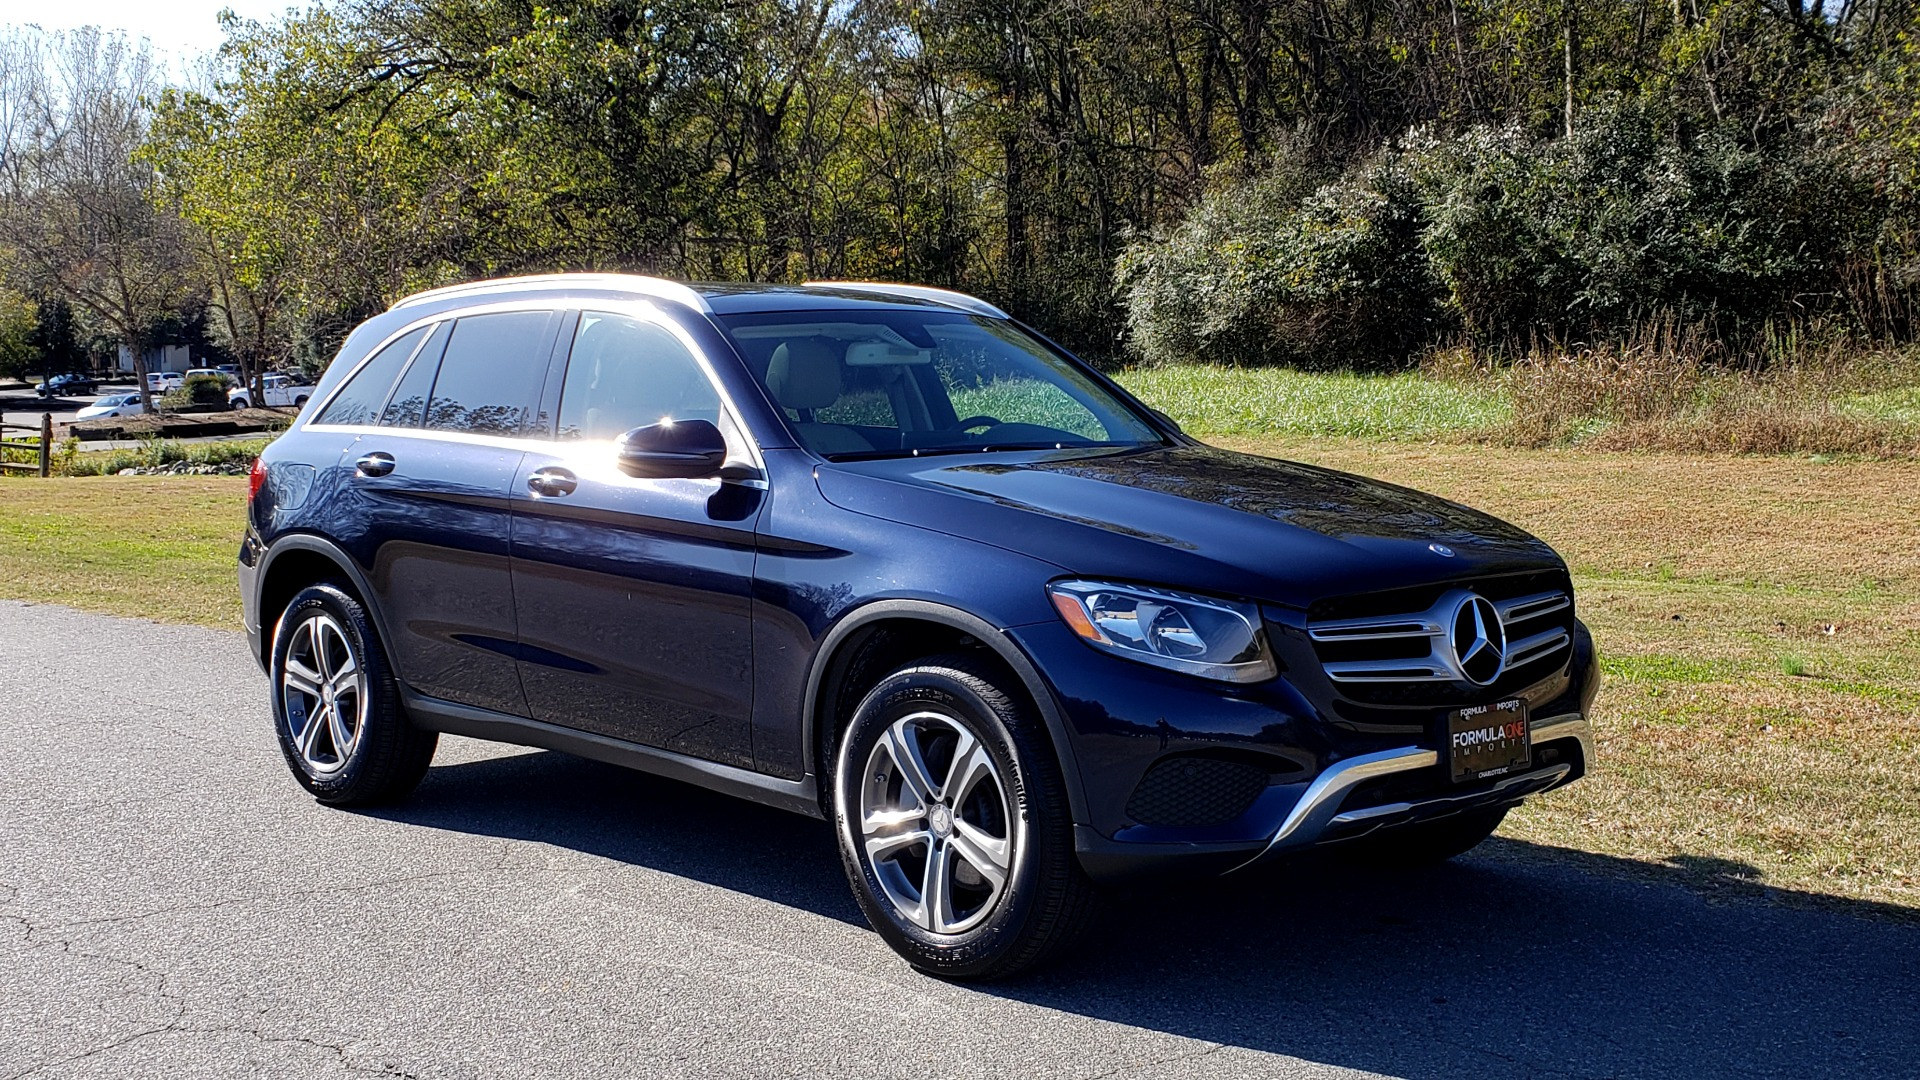 Used 2017 Mercedes-Benz GLC 300 4MATIC / PREM / NAV / KEYLESS-GO / SUNROOF / REARVIEW for sale Sold at Formula Imports in Charlotte NC 28227 4